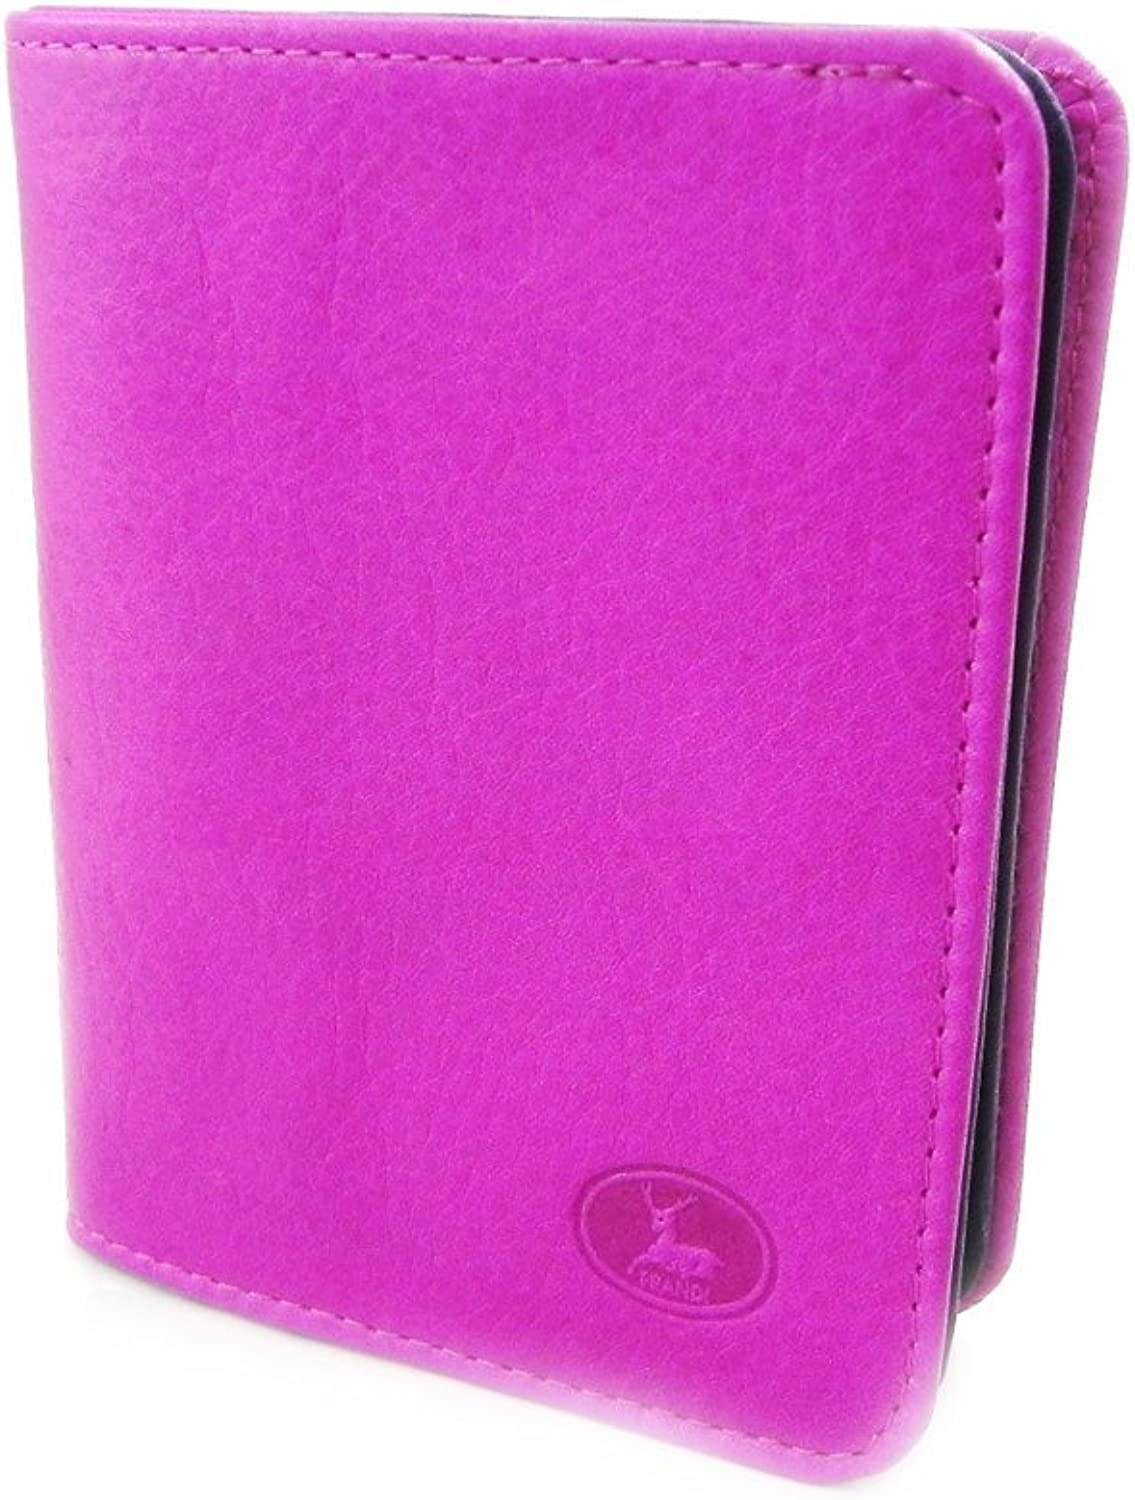 [On SALE   SOLDES  ]   Leather wallet  Frandi  2 tone purple wild.